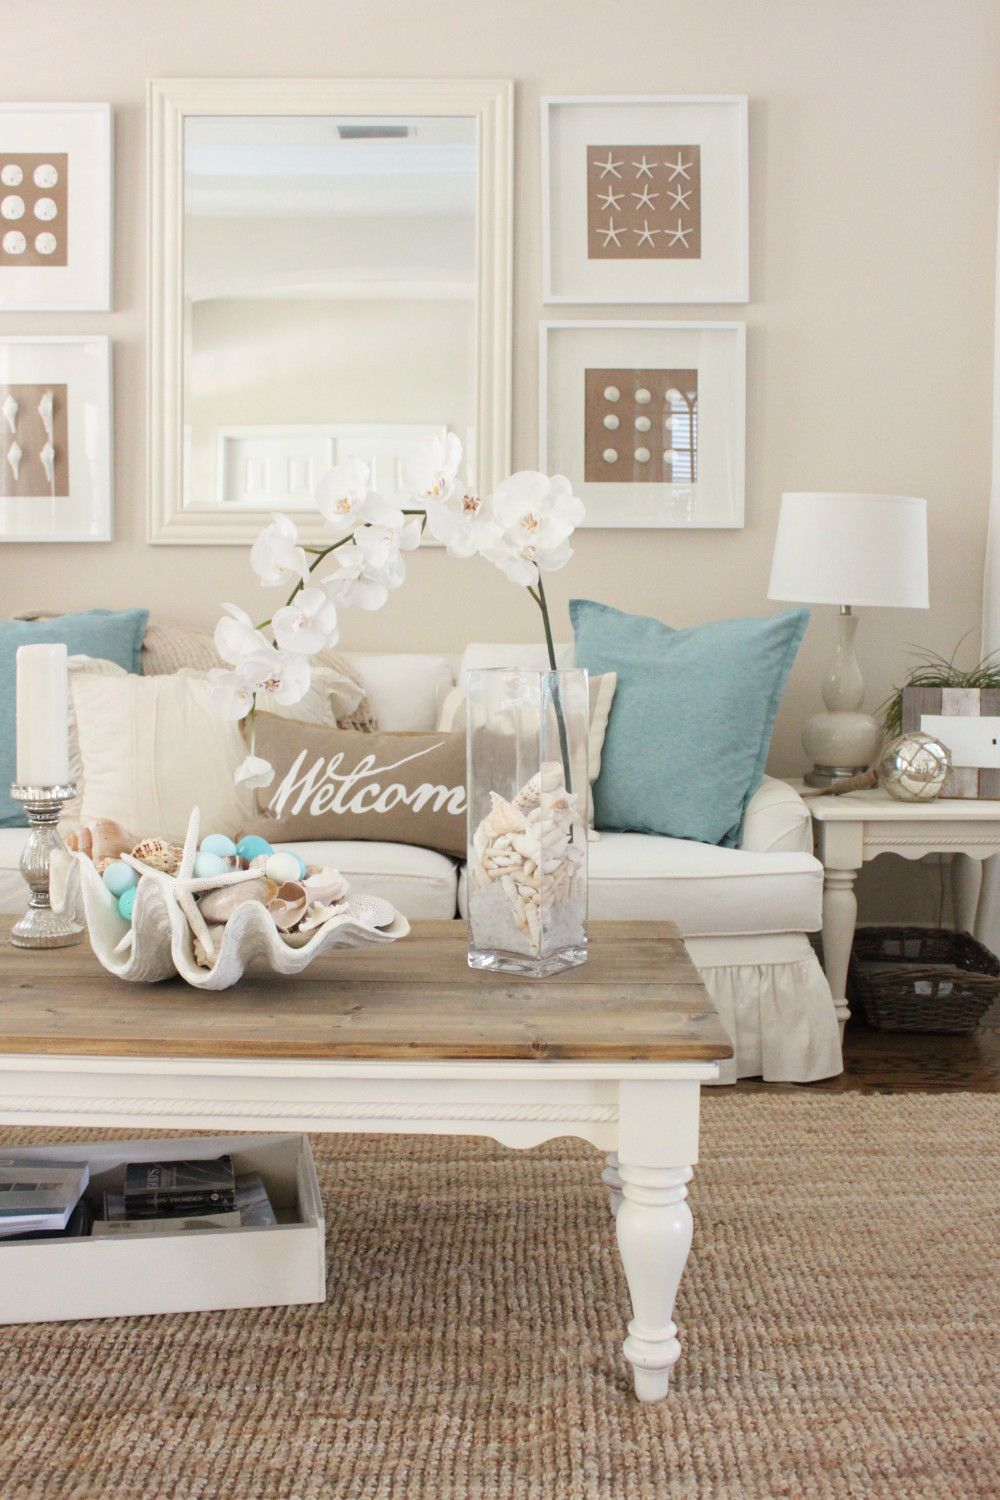 Easter 2016 At Starfish Cottage The Living Room Starfish Cottage Coastal Decorating Living Room Coastal Living Room Furniture Beach Theme Living Room